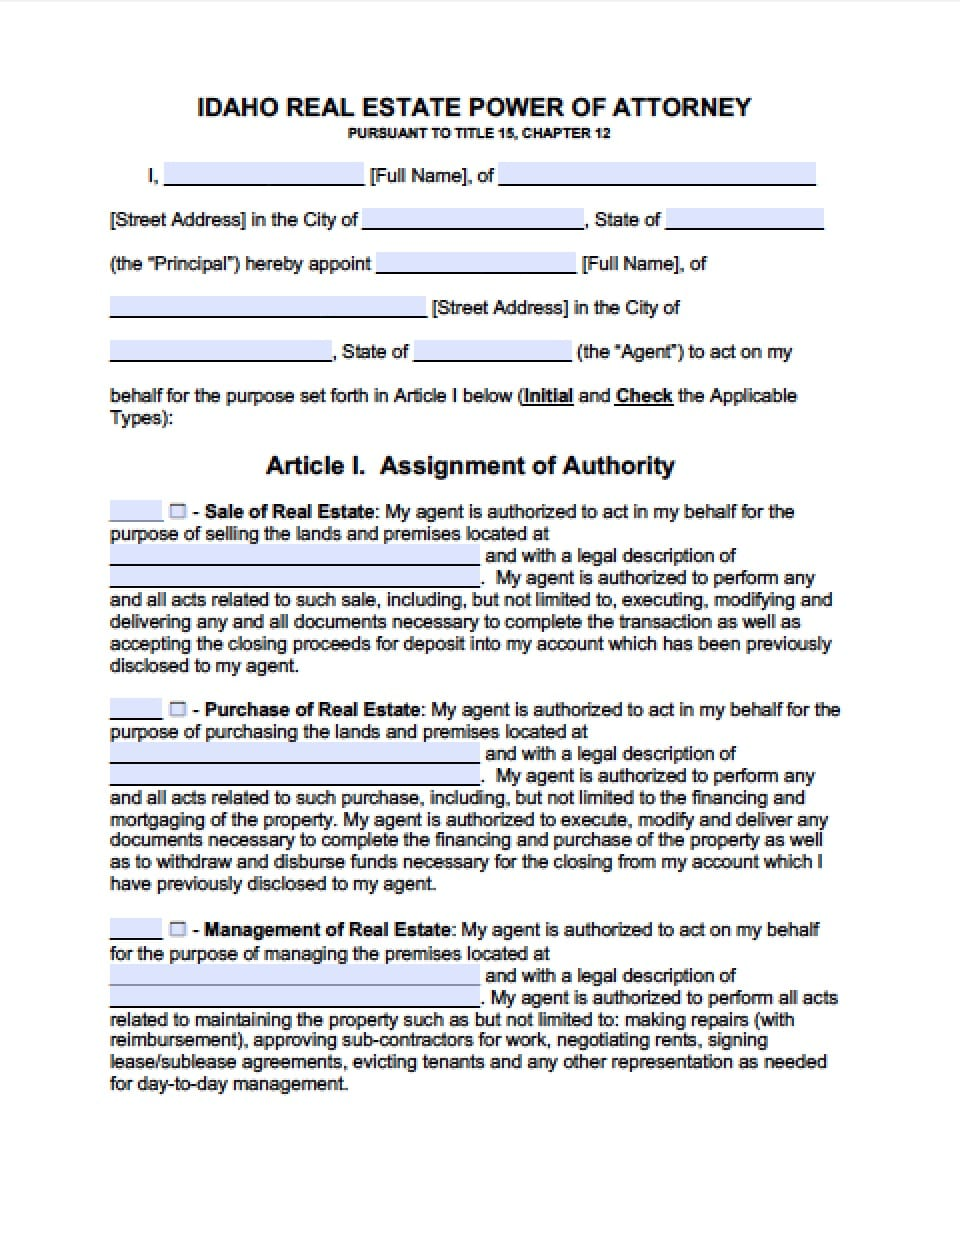 Idaho Real Estate Only Power Of Attorney Form Power Of